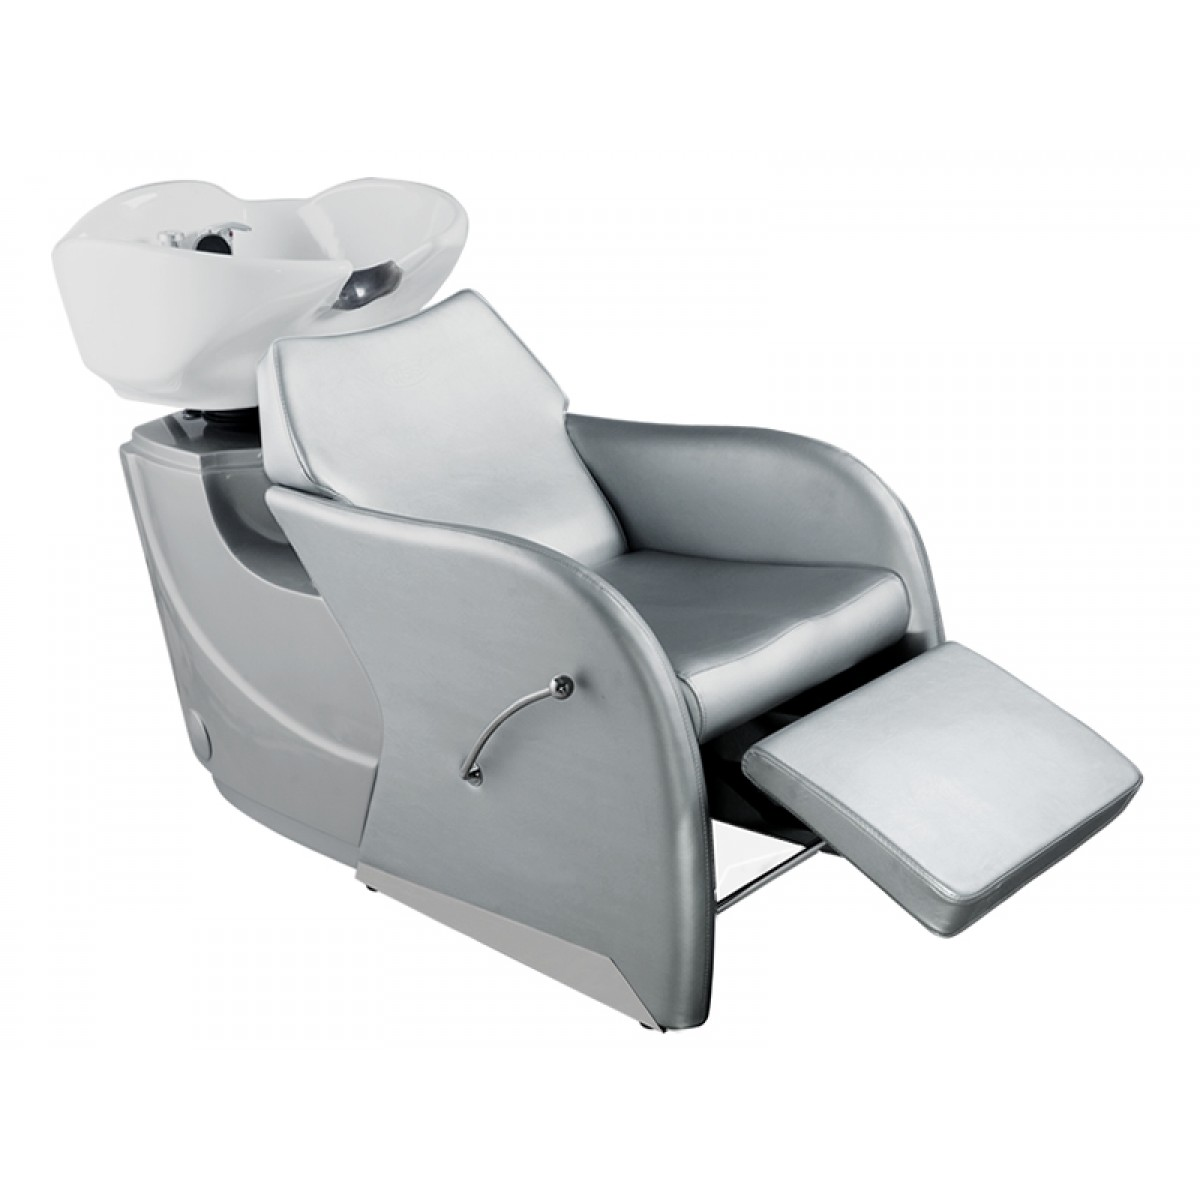 backwash chairs for sale best gaming chair back pain odessa shampoo unit in silver bowls bowl salon sinks